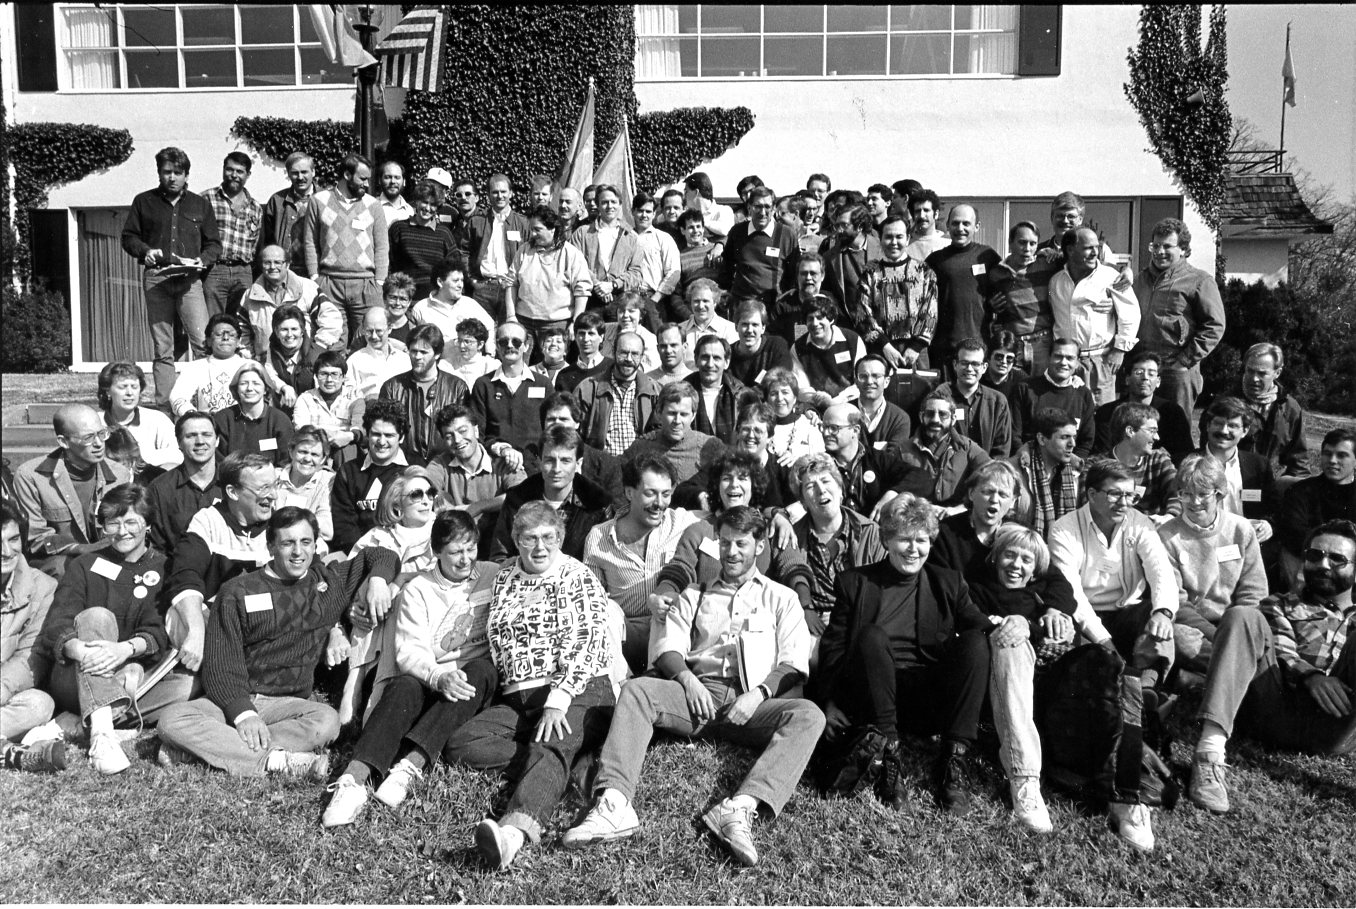 Dallas representatives clearly visible in this group photo:  BJ Anderson  (lower left corner, her hands around her right knee, wearing a dark sweater with white name tag),  Mike Grossman  (rear row, just right of center, wearing dark sweater with white shirt collar and white name tag), and  John Thomas  (third in from the upper right corner, standing behind the man in the white jacket).